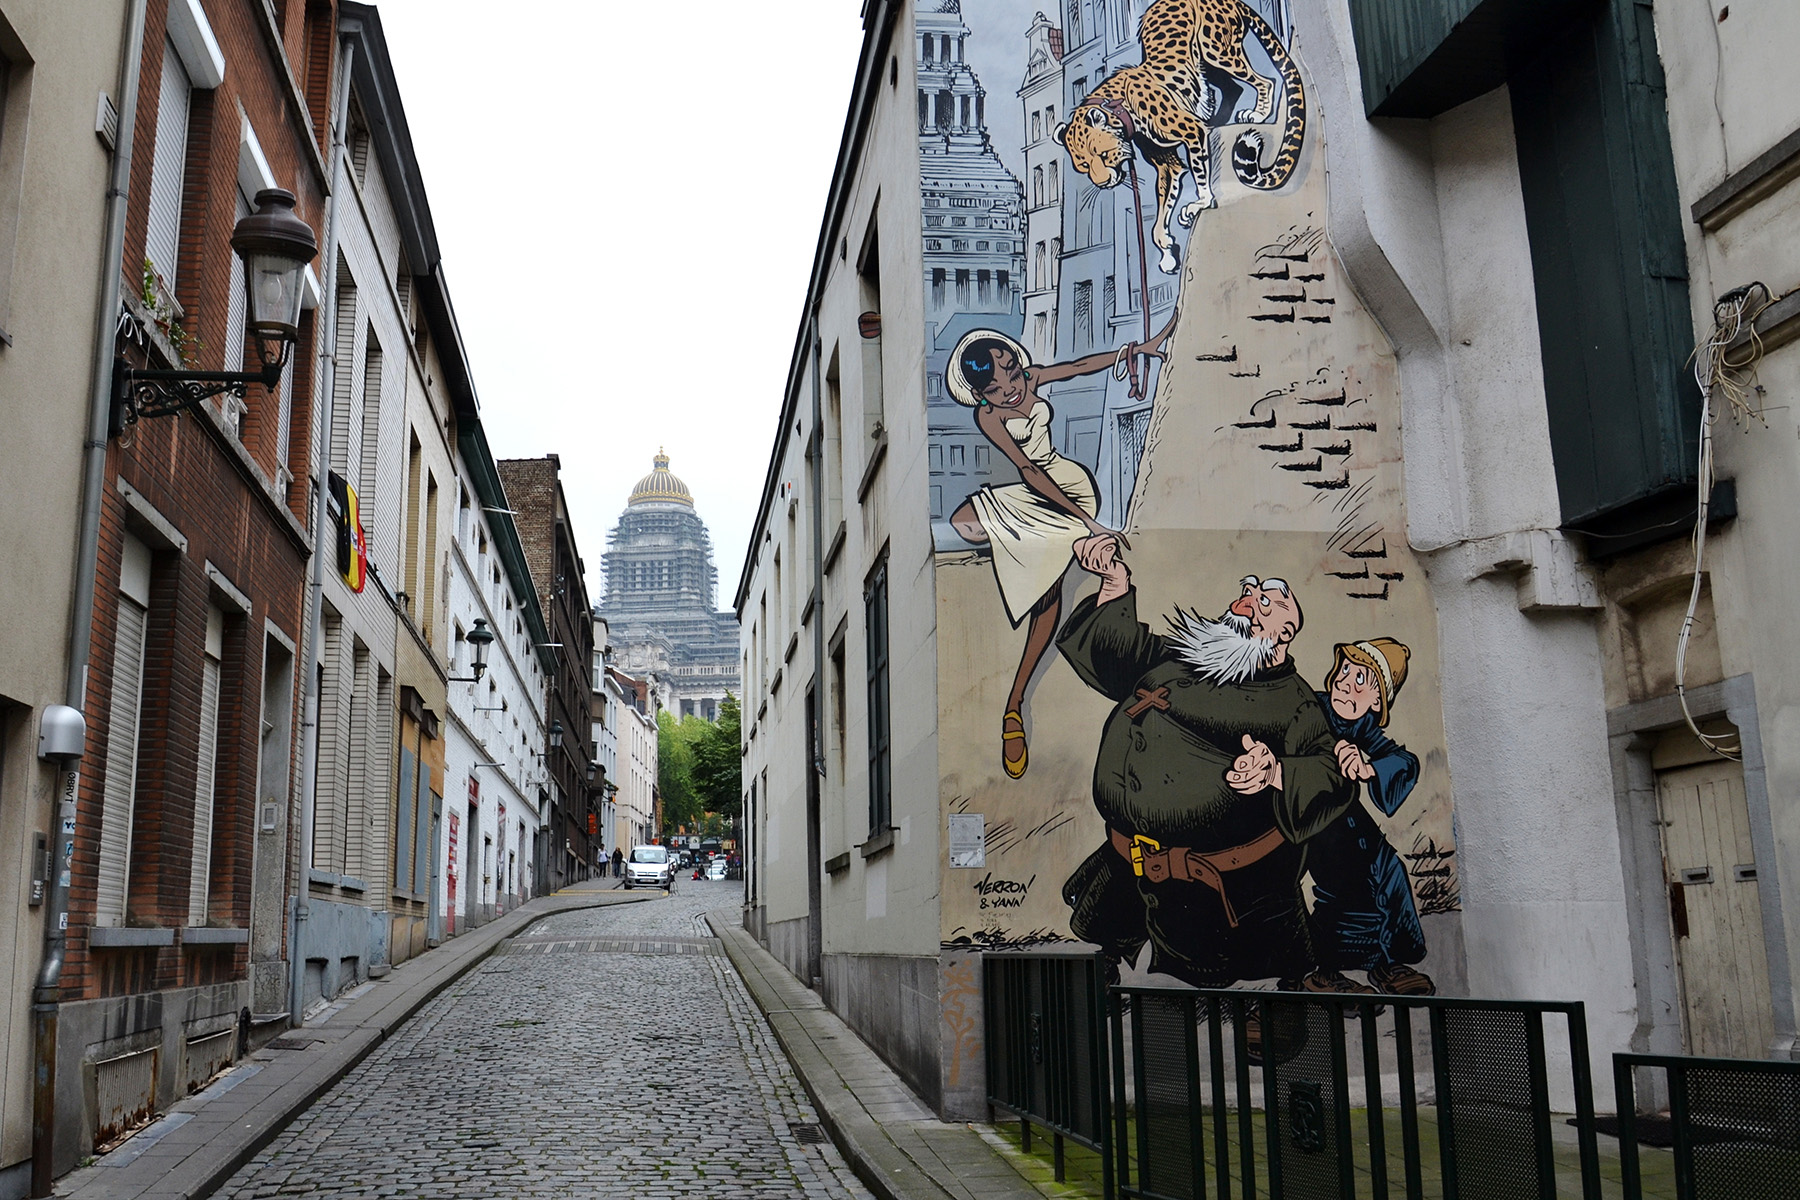 Brussels is chaotic and quirky, which is what makes it so special.